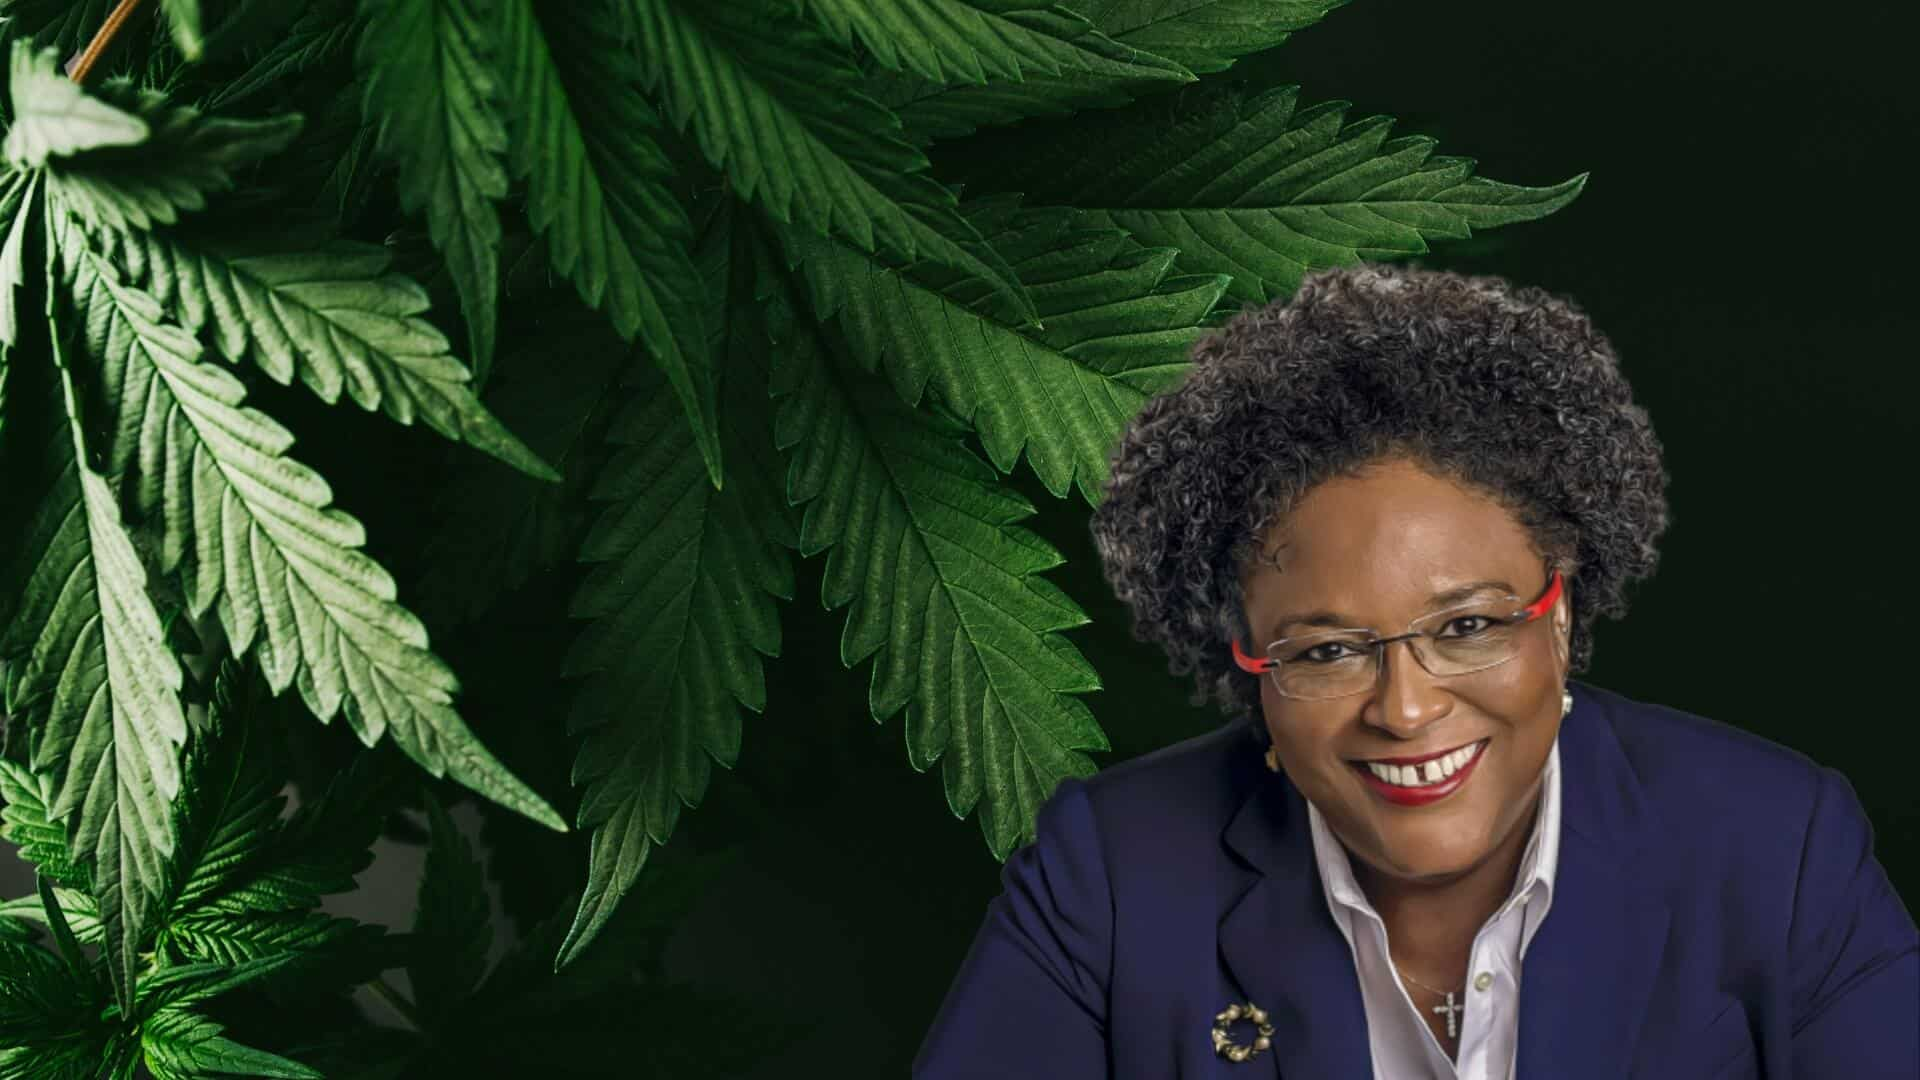 Prime Minister Mia Mottley Promises, debate on the Sacramental Cannabis Bill 2019, country will vote on marijuana